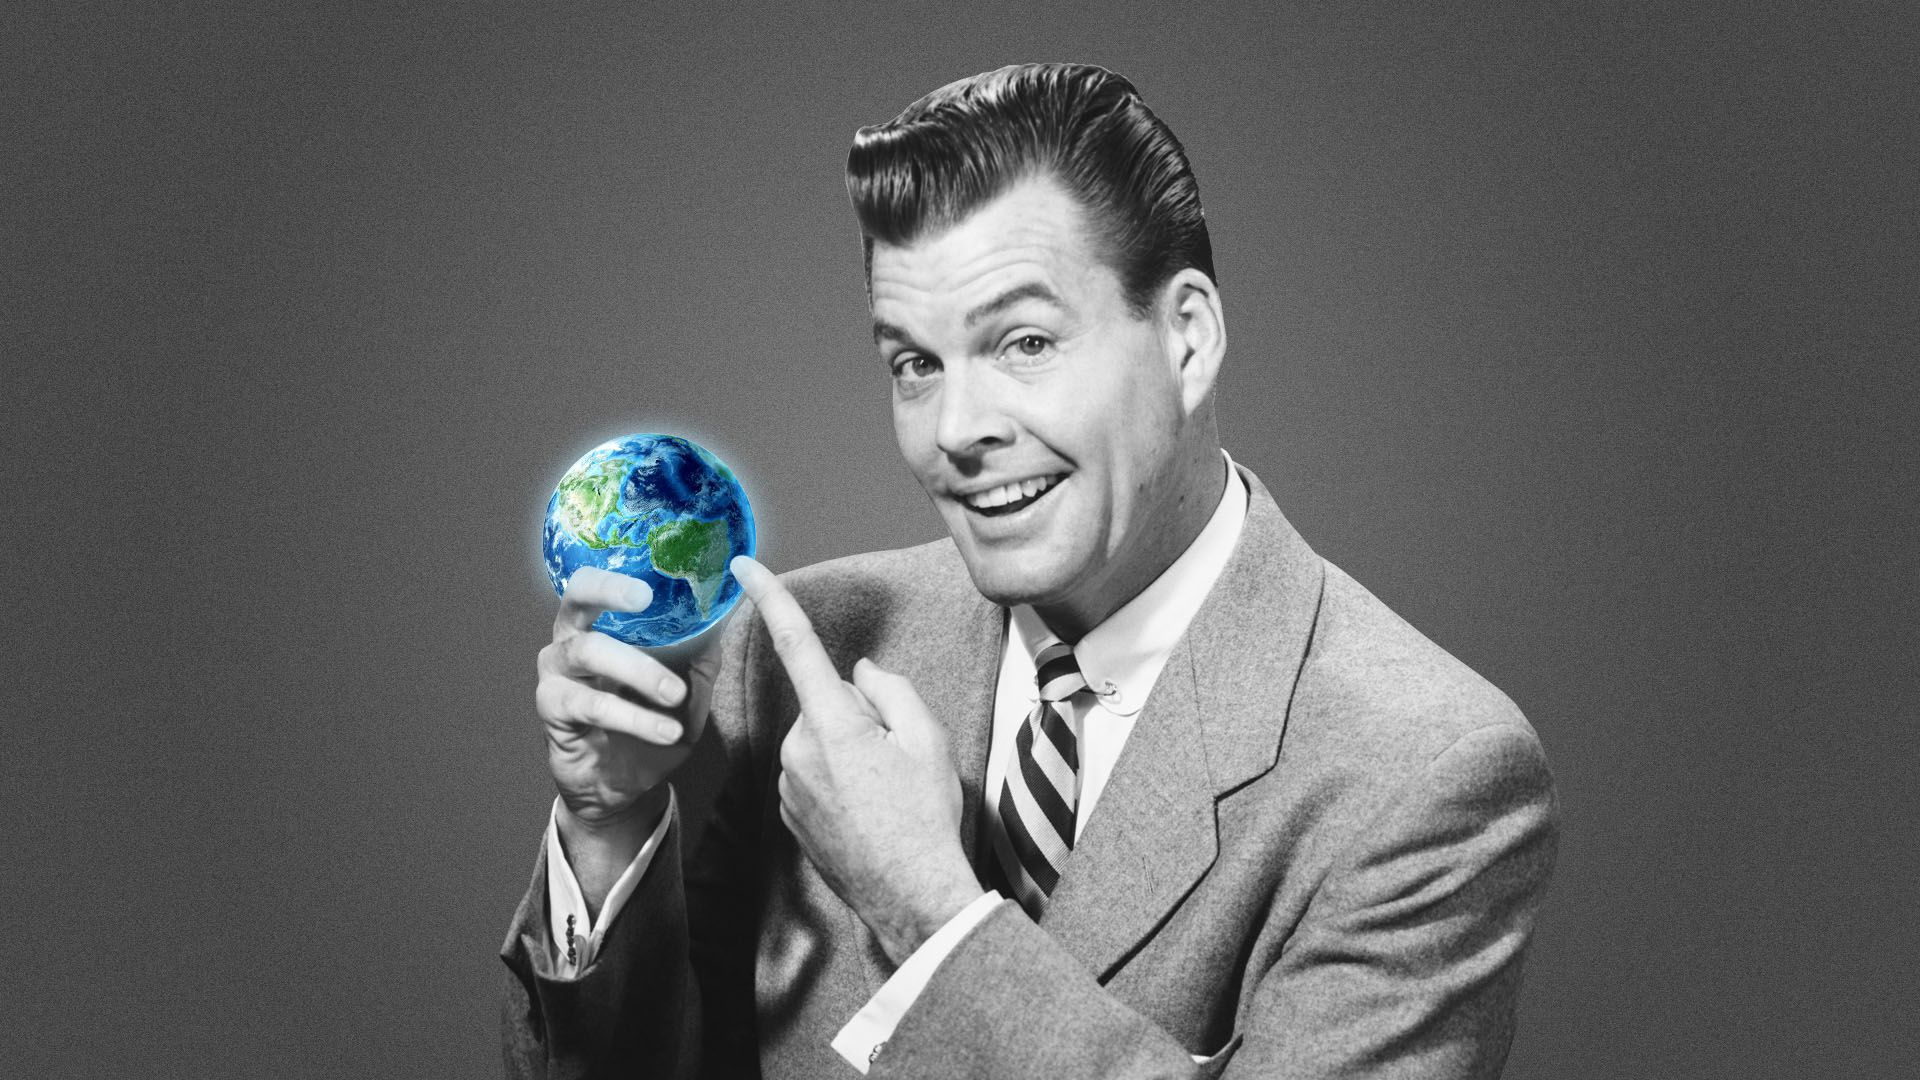 Illustration of vintage advertisement of a man holding up a small glowing earth